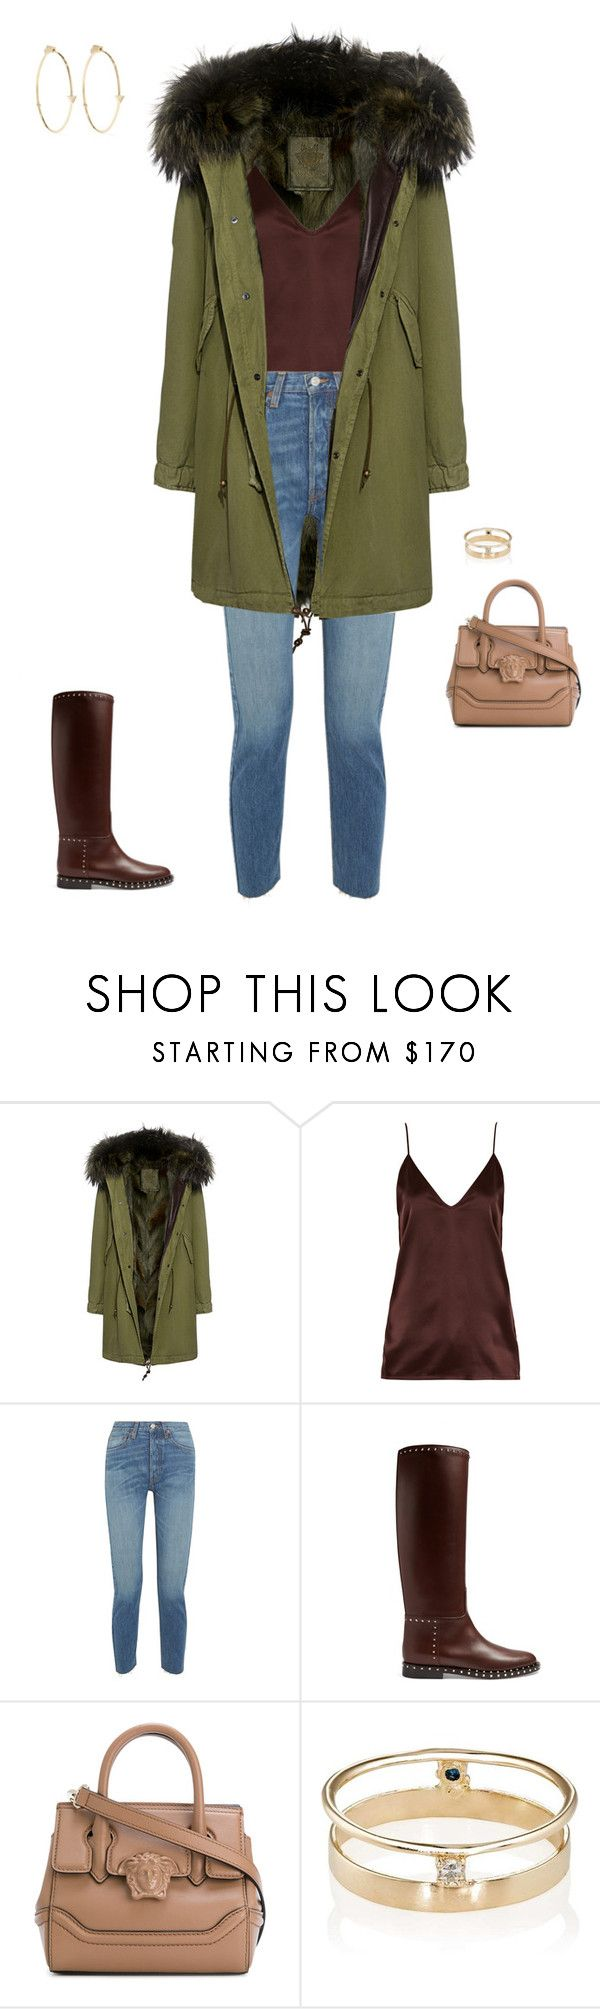 """Untitled #370"" by marcushanna ❤ liked on Polyvore featuring Mr & Mrs Italy, Raey, RE/DONE, Valentino, Versace, Loren Stewart and Jennifer Meyer Jewelry"